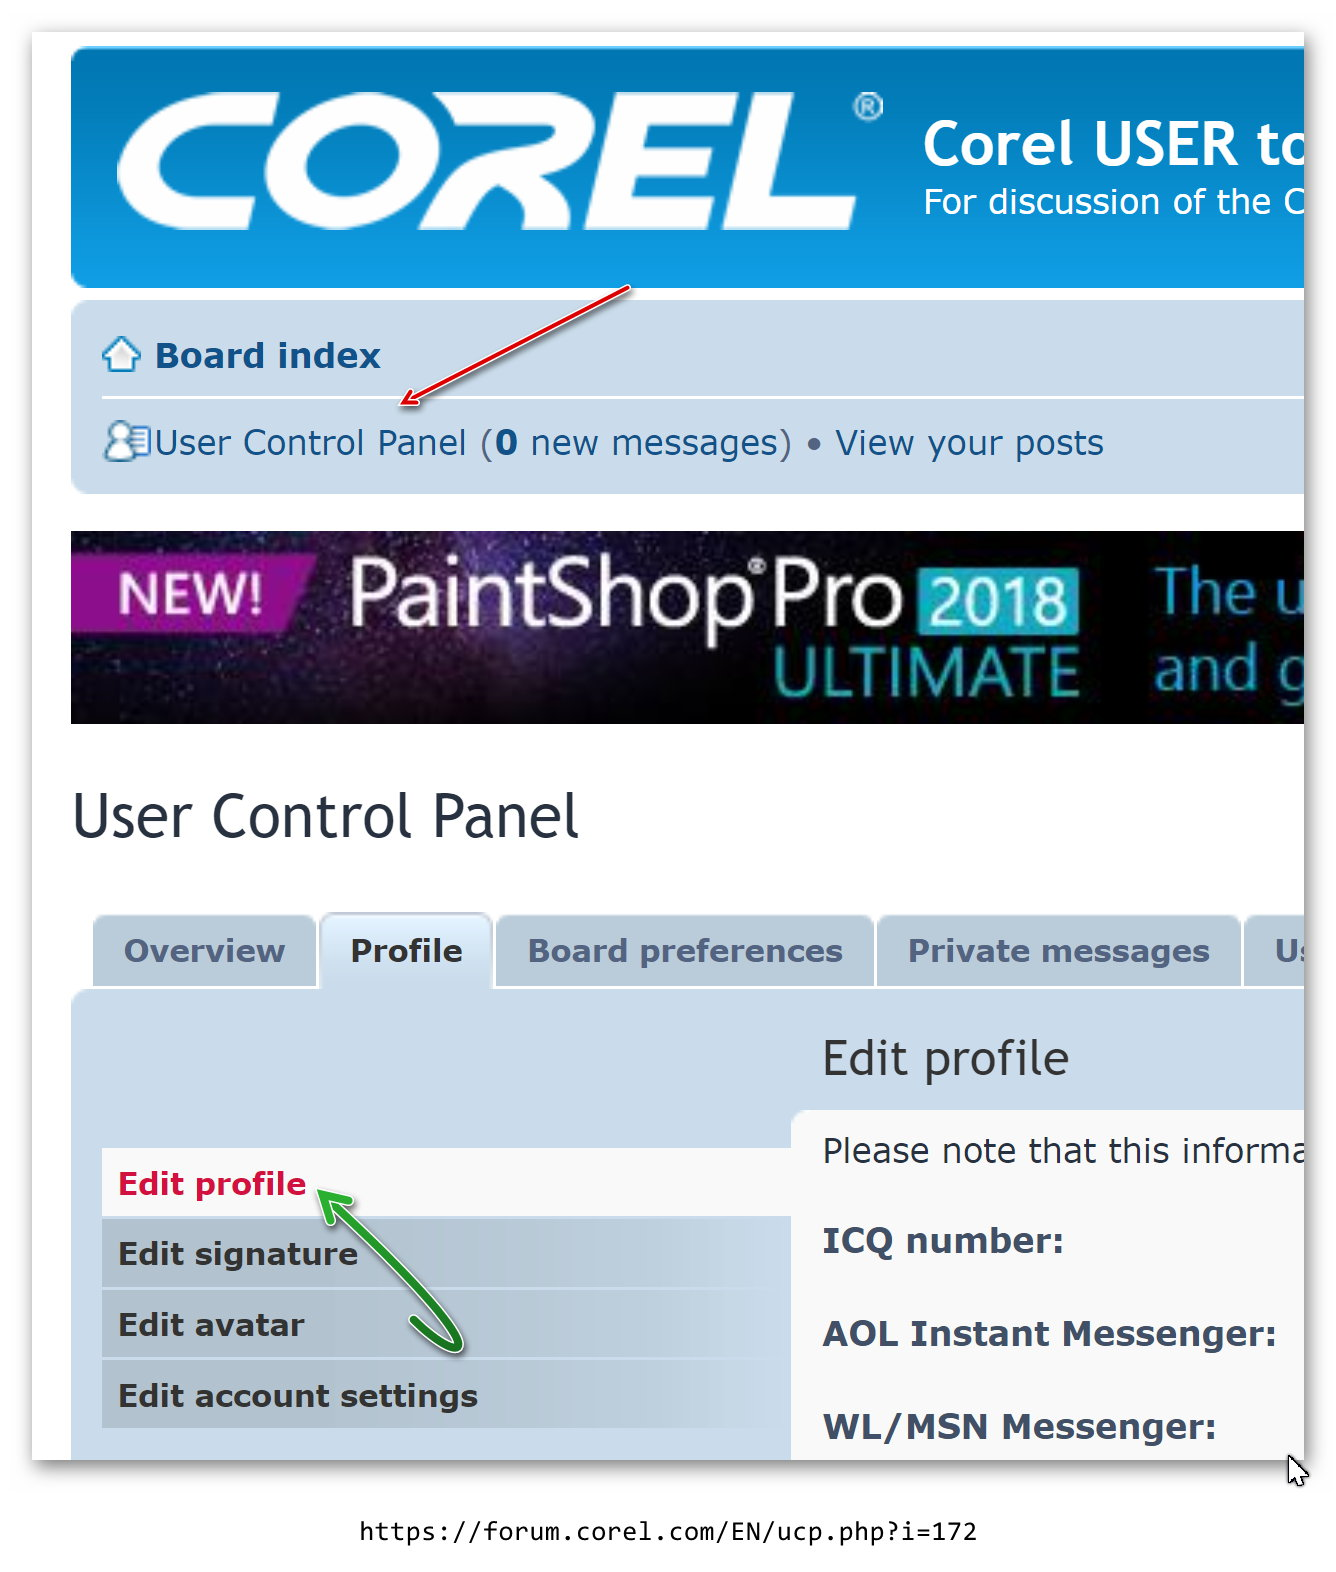 Corel Profile01.jpg